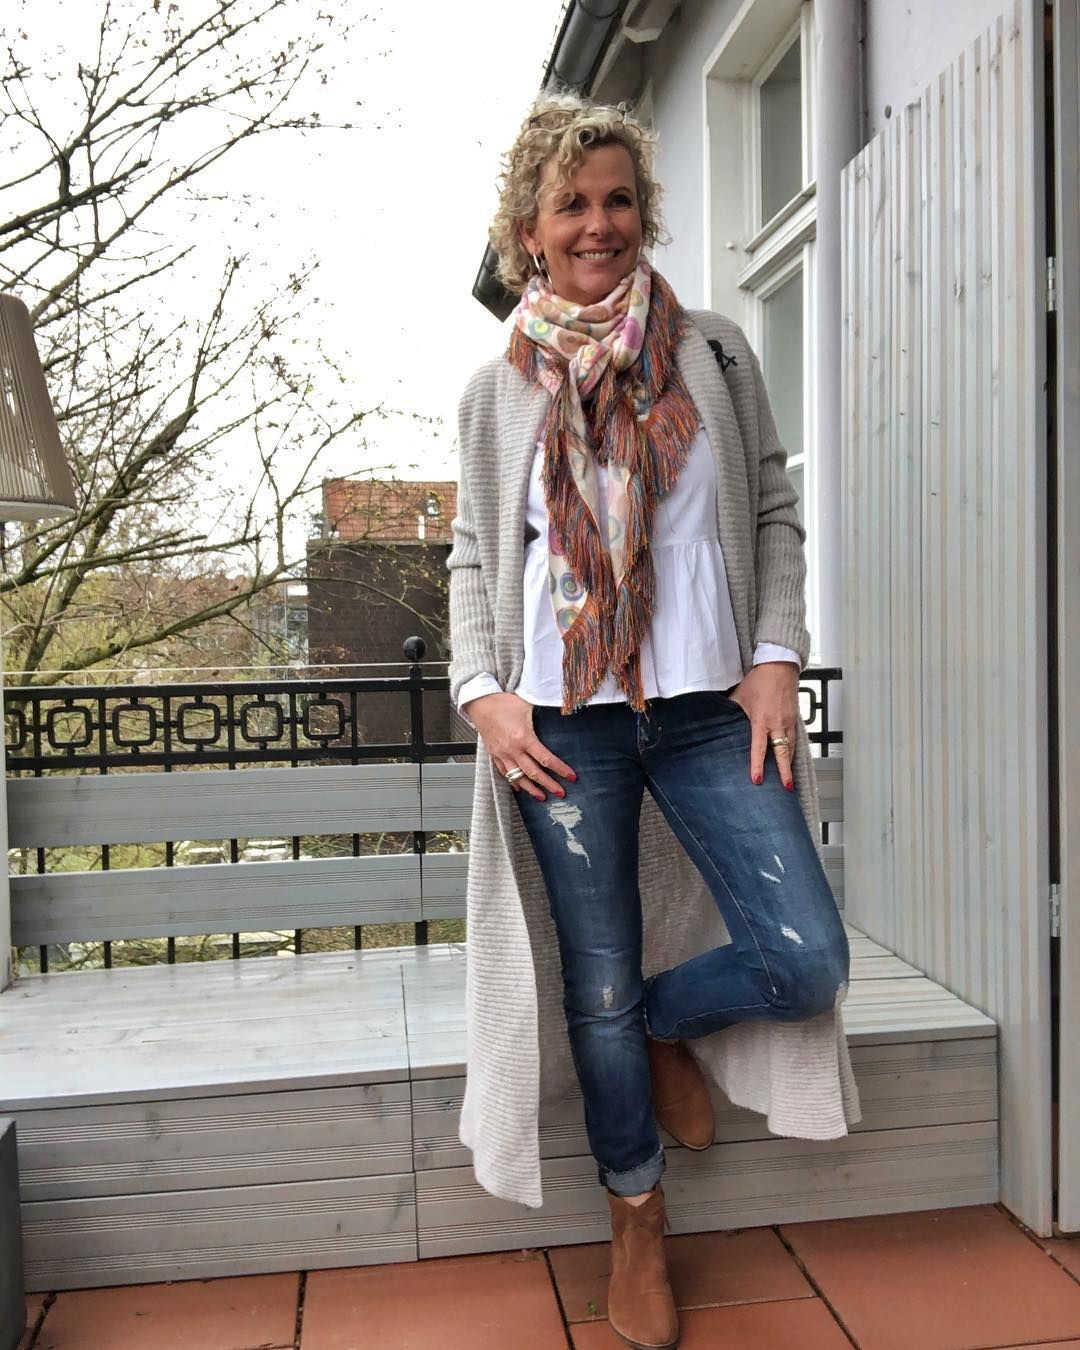 Pin von Laura auf Over 50 Fashion | Smart casual outfit